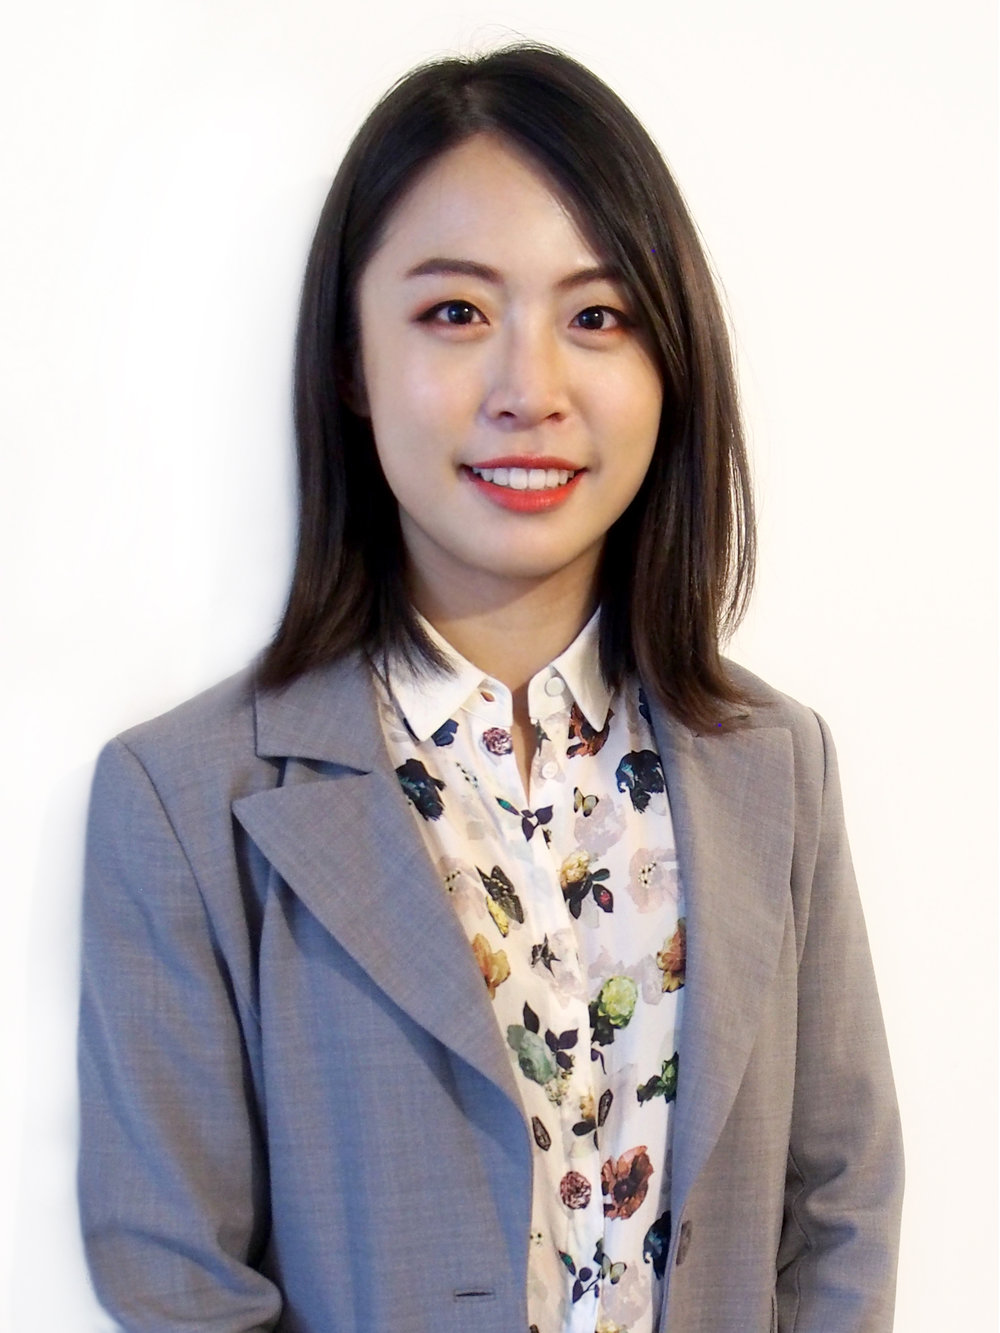 Celia (Wen Chin) Hu, Lawyer/Co-Founding Partner - Celia is a licensed family lawyer and a co-founding partner of JDC Law LLP along with Jen and Dandi. She became interested in family law after volunteering with the Family Law Project, during which she successfully assisted self-represented parties in the family law court. Celia gained further family law experience during her articling term with an experienced lawyer in Toronto when she provided excellent service to clients in both family law and wills and estates.Separation from a spouse can be a very stressful time that leaves a lasting impact on a person's life. Celia strives to minimize the pain of a separation by using her skills and experience to guide her clients and advocate their interests through the legal process. Celia hopes to build a relationship of trust with each client by being committed and understanding, and to help her clients find ways to rebuild their life after separation.In addition to her passion for family law, Celia's strong writing skills, which she has honed over the years at Queen's University and Osgoode Hall Law School, allow her to be an effective advocate for her client's positions.Interesting Facts: Celia was fascinated by ghost stories as a child and grew to become a big fan of the horror movie genre. She loves horror-themed escape rooms and playing horror virtual reality games. She is, however, terrified of roller coasters.Memberships:Law Society of Upper CanadaCanadian Bar AssociationOntario Bar Association – Family LawEducation and Qualifications:Bar of OntarioOsgoode Hall Law School, J.D.Queen's University, B.A. Honours (Political Studies, Economics)